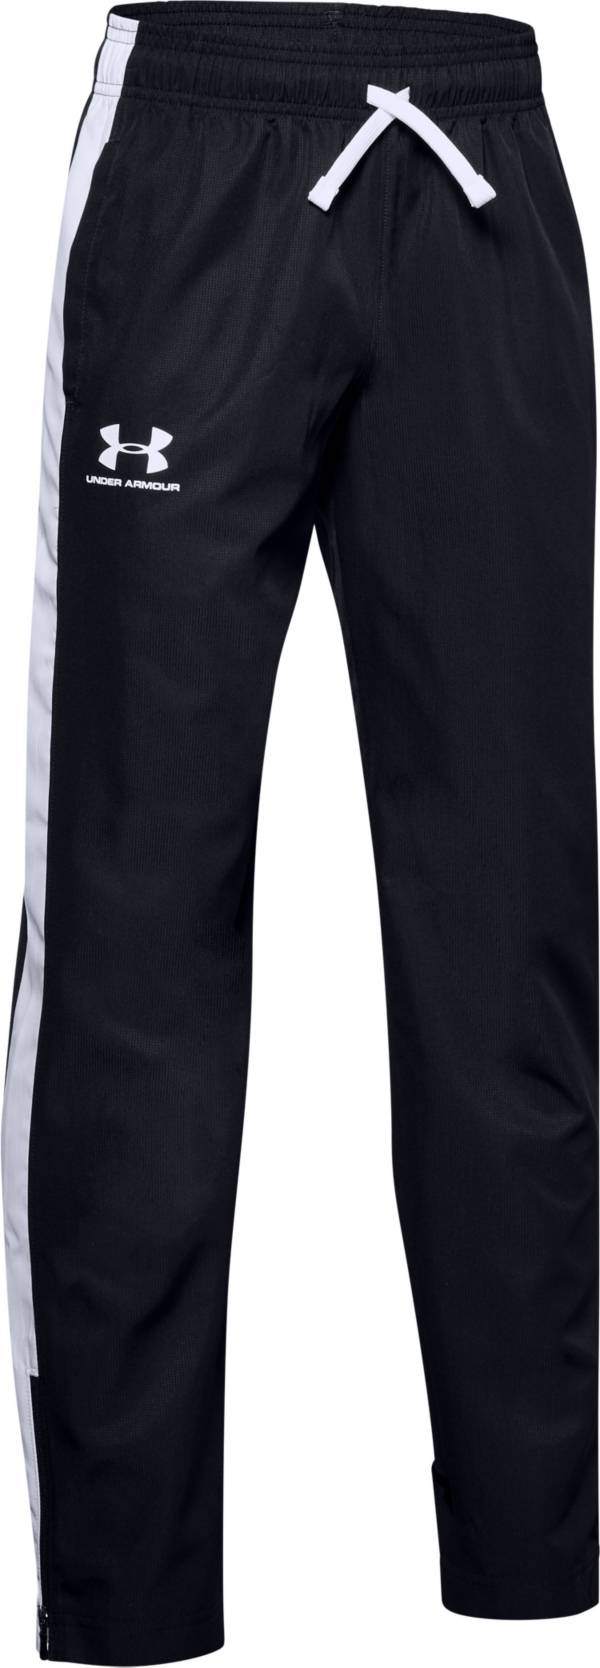 Under Armour Boys' Woven Track Pants product image